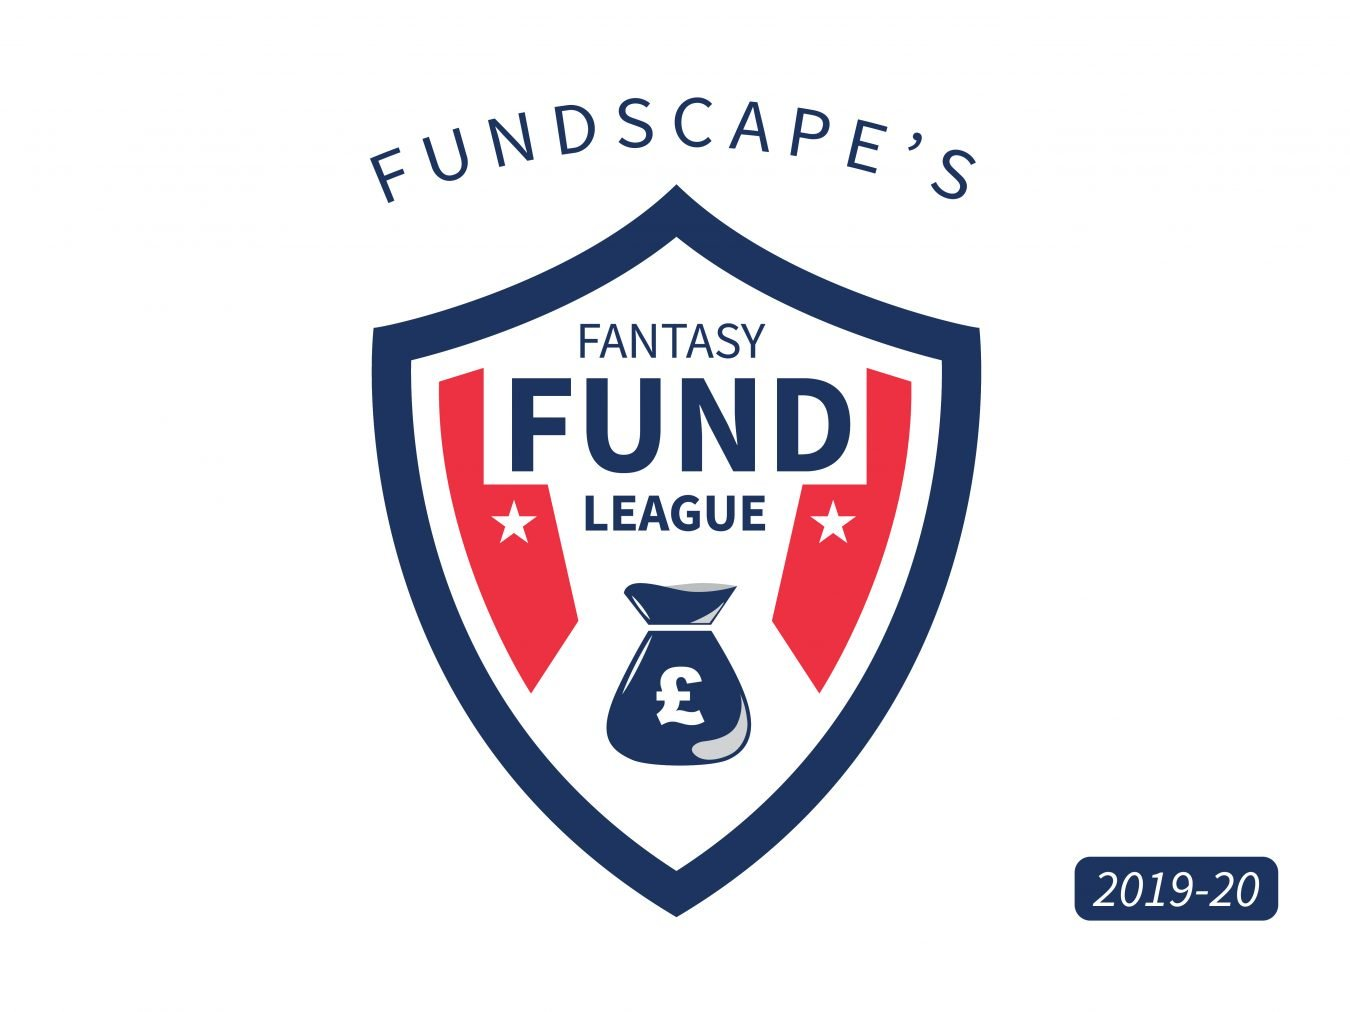 Fundscape's Fantasy Fund League